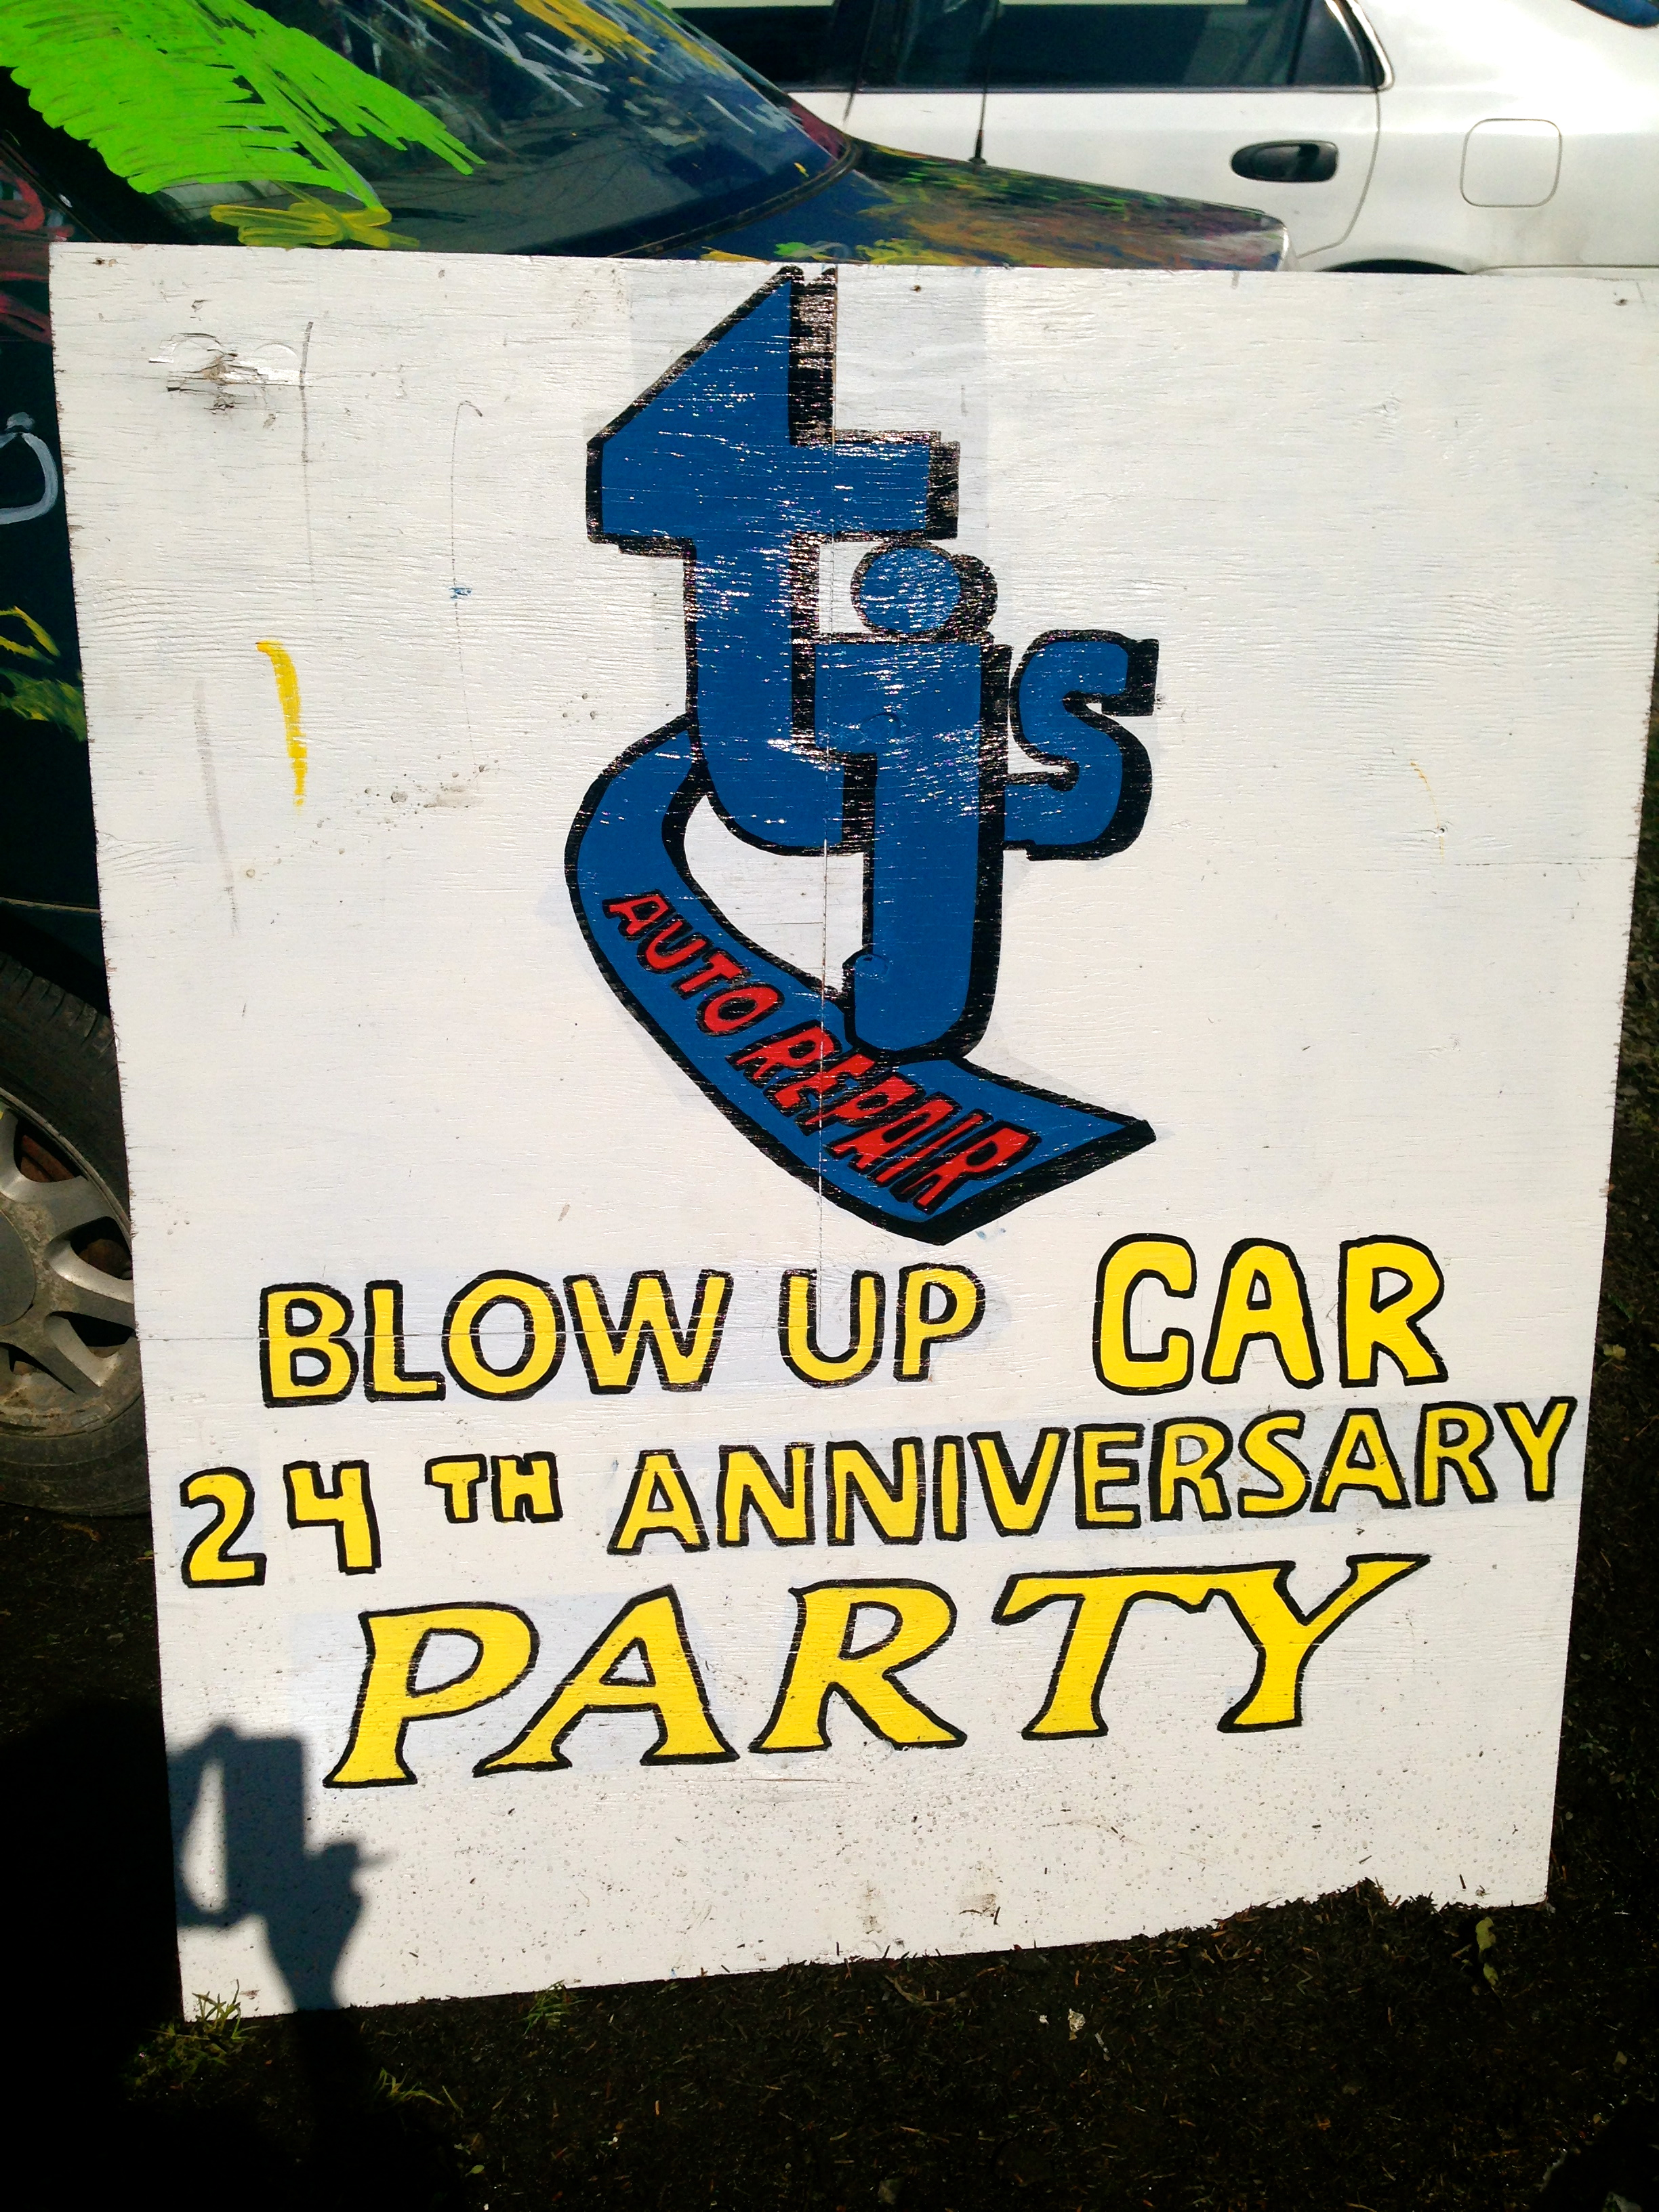 TJ's  24th Anniversary Party!